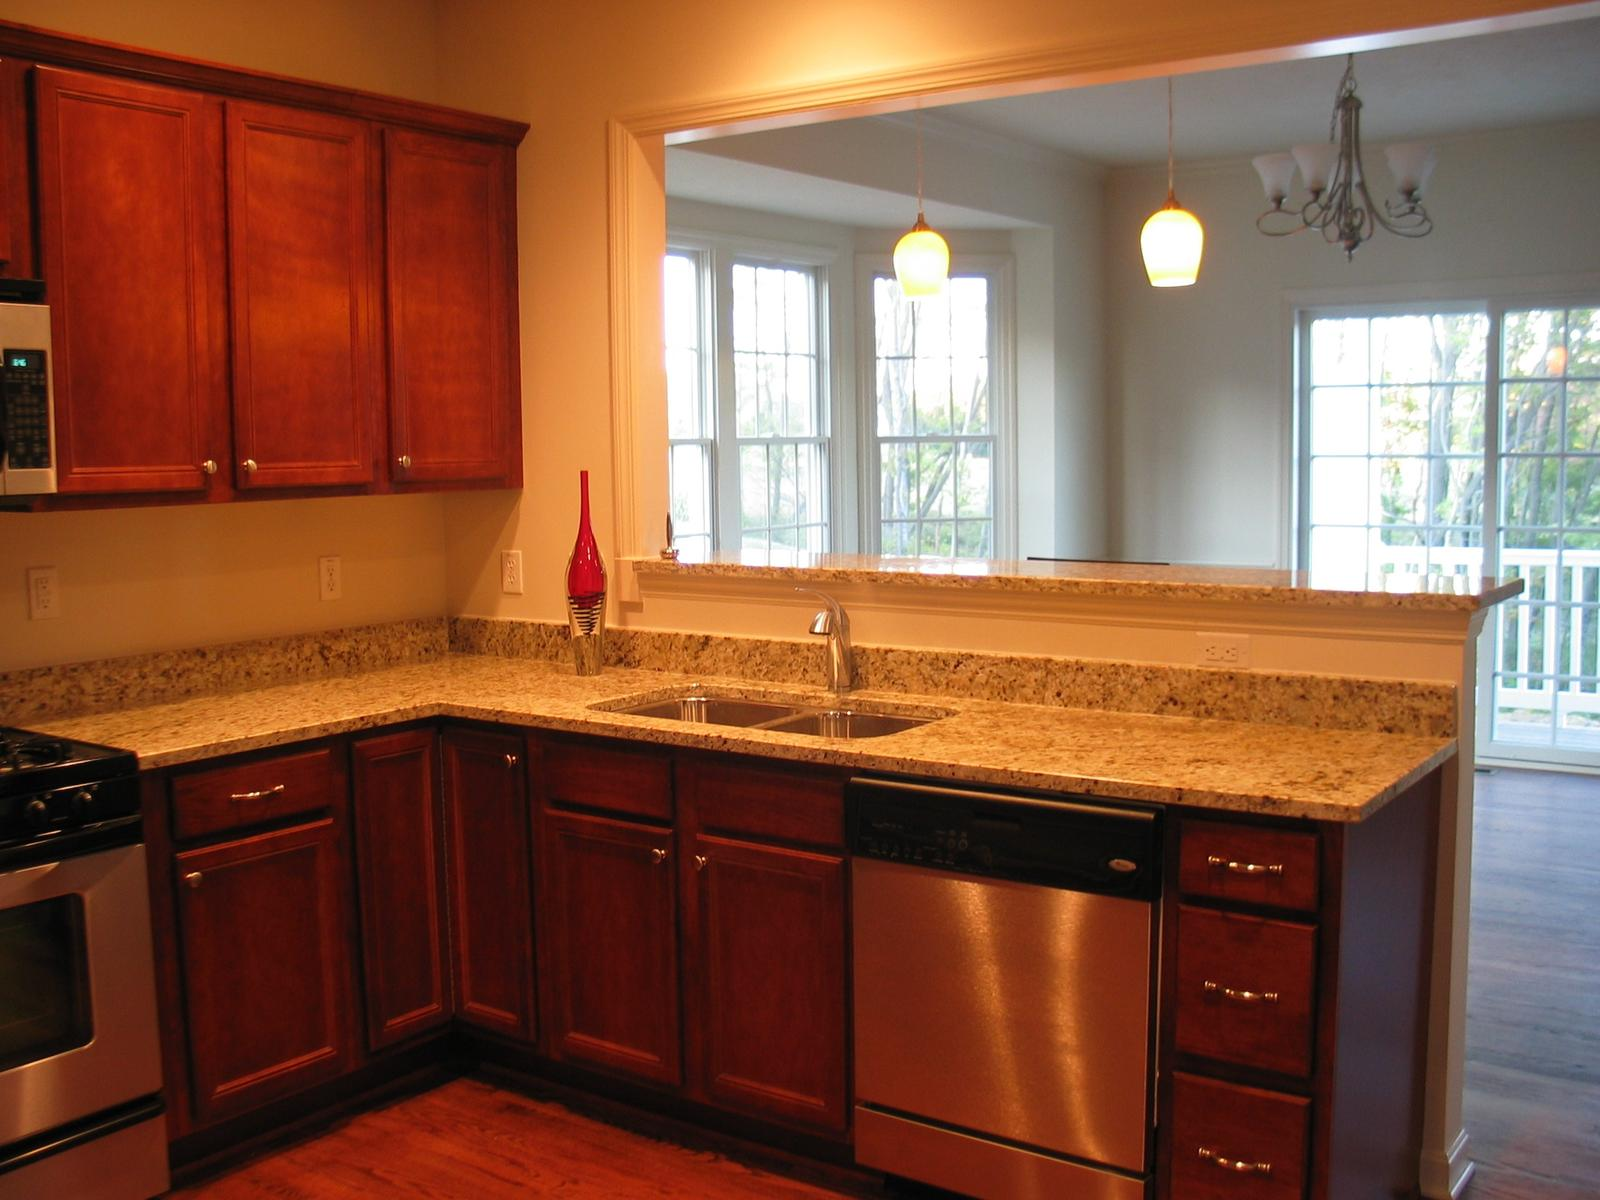 New townhouse for sale in pittsburgh classified ads buy Kitchen design home visit